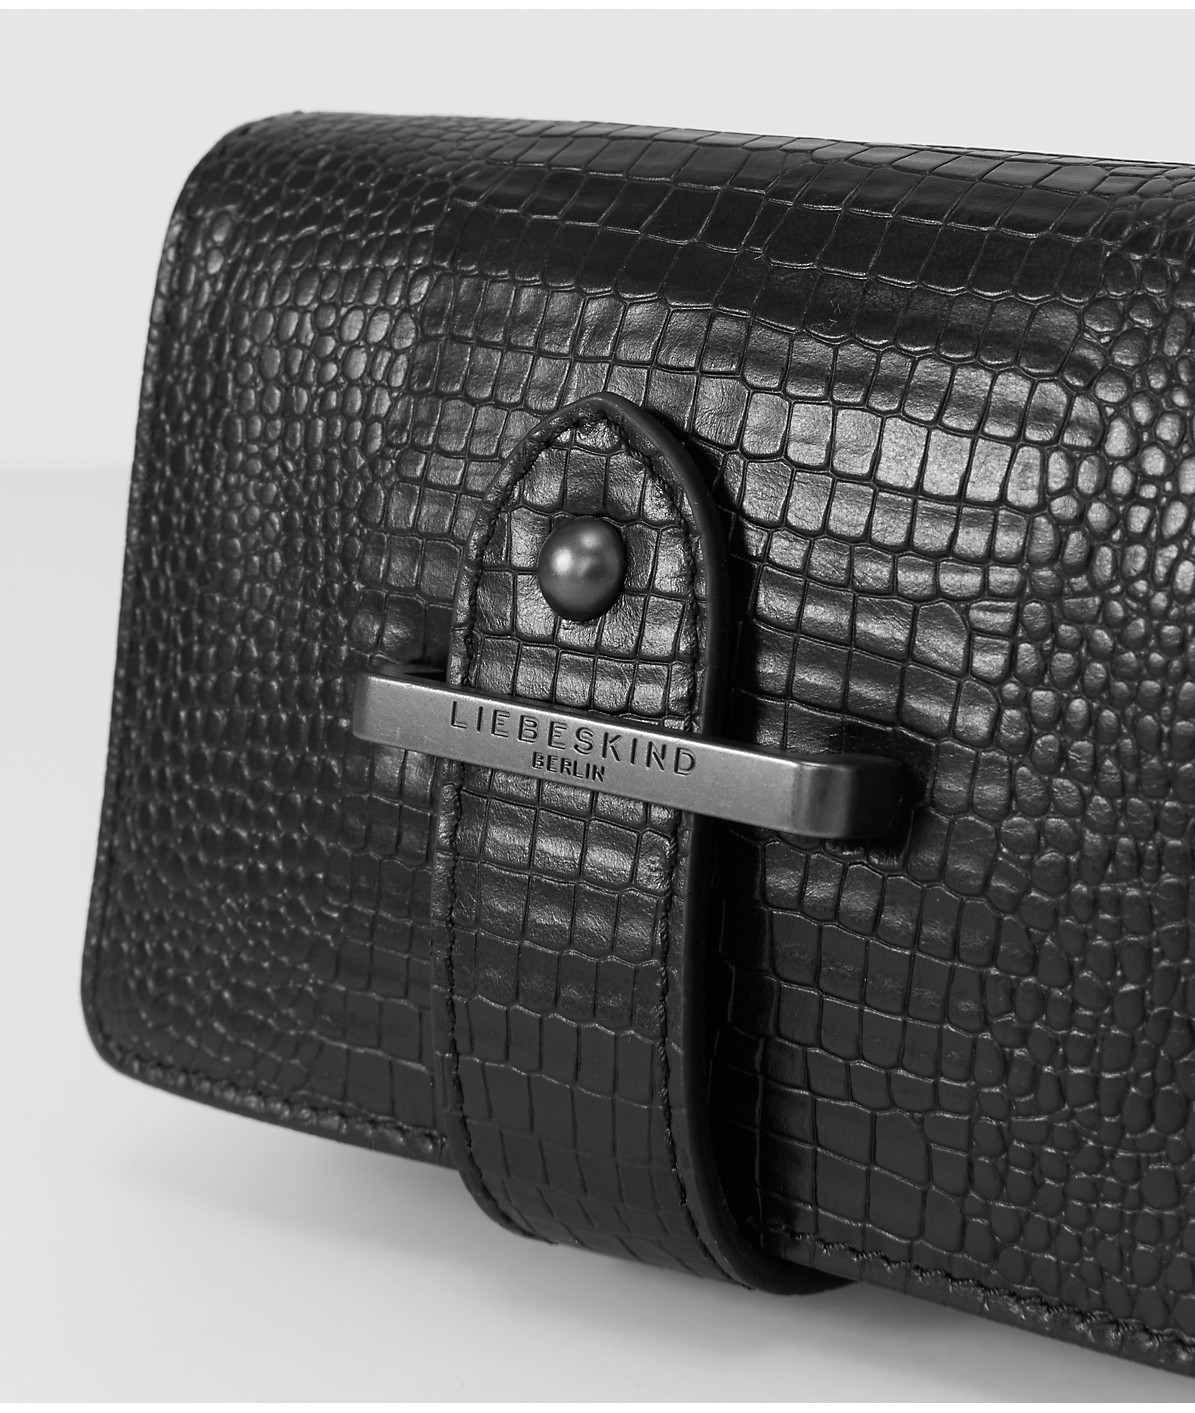 Clutch with a textured surface from liebeskind